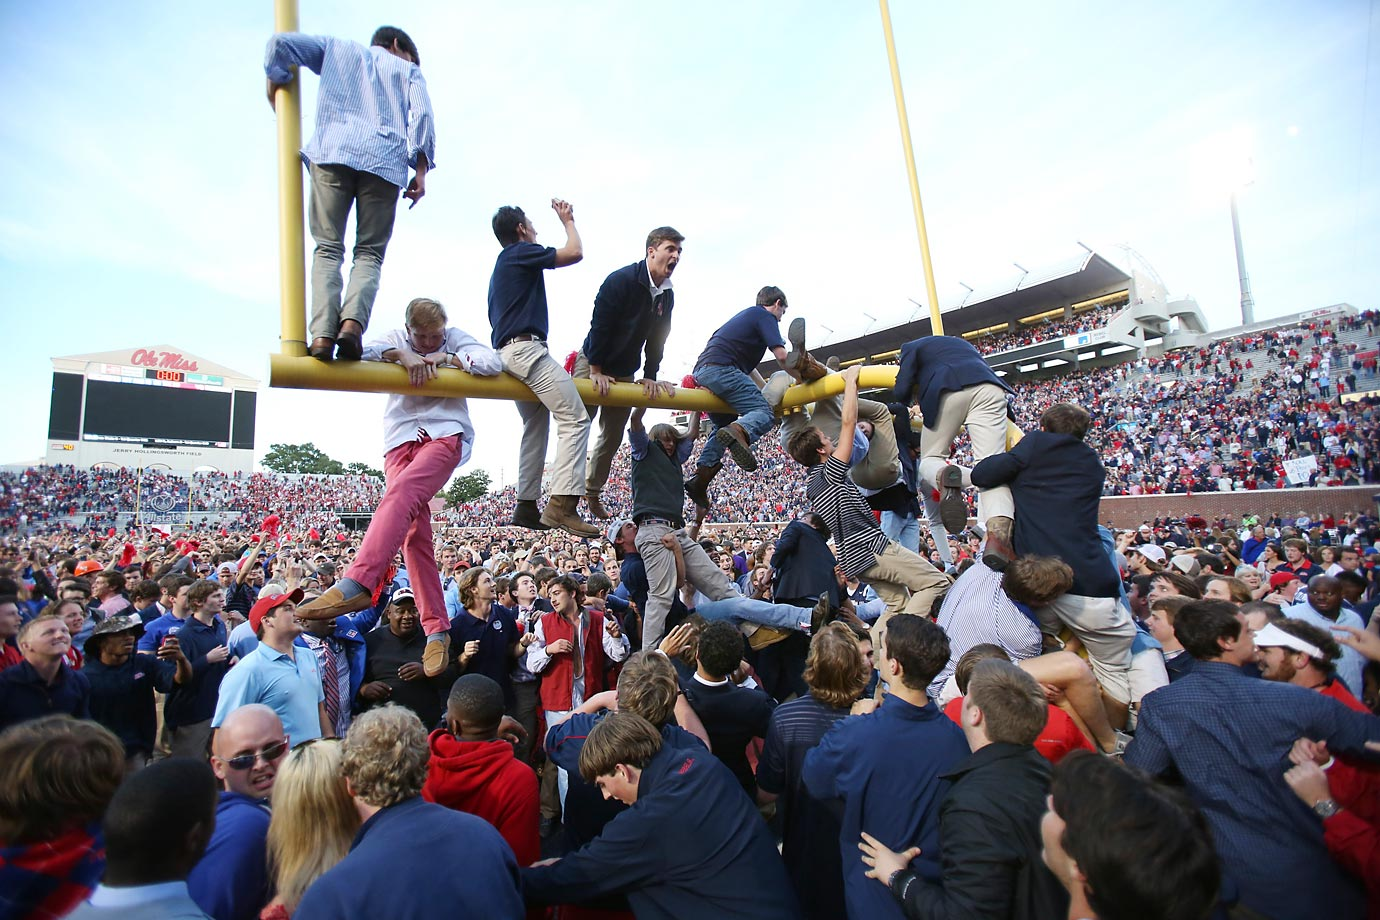 University of Mississippi students rush the field after Ole Miss upset rival Alabama 23-17.